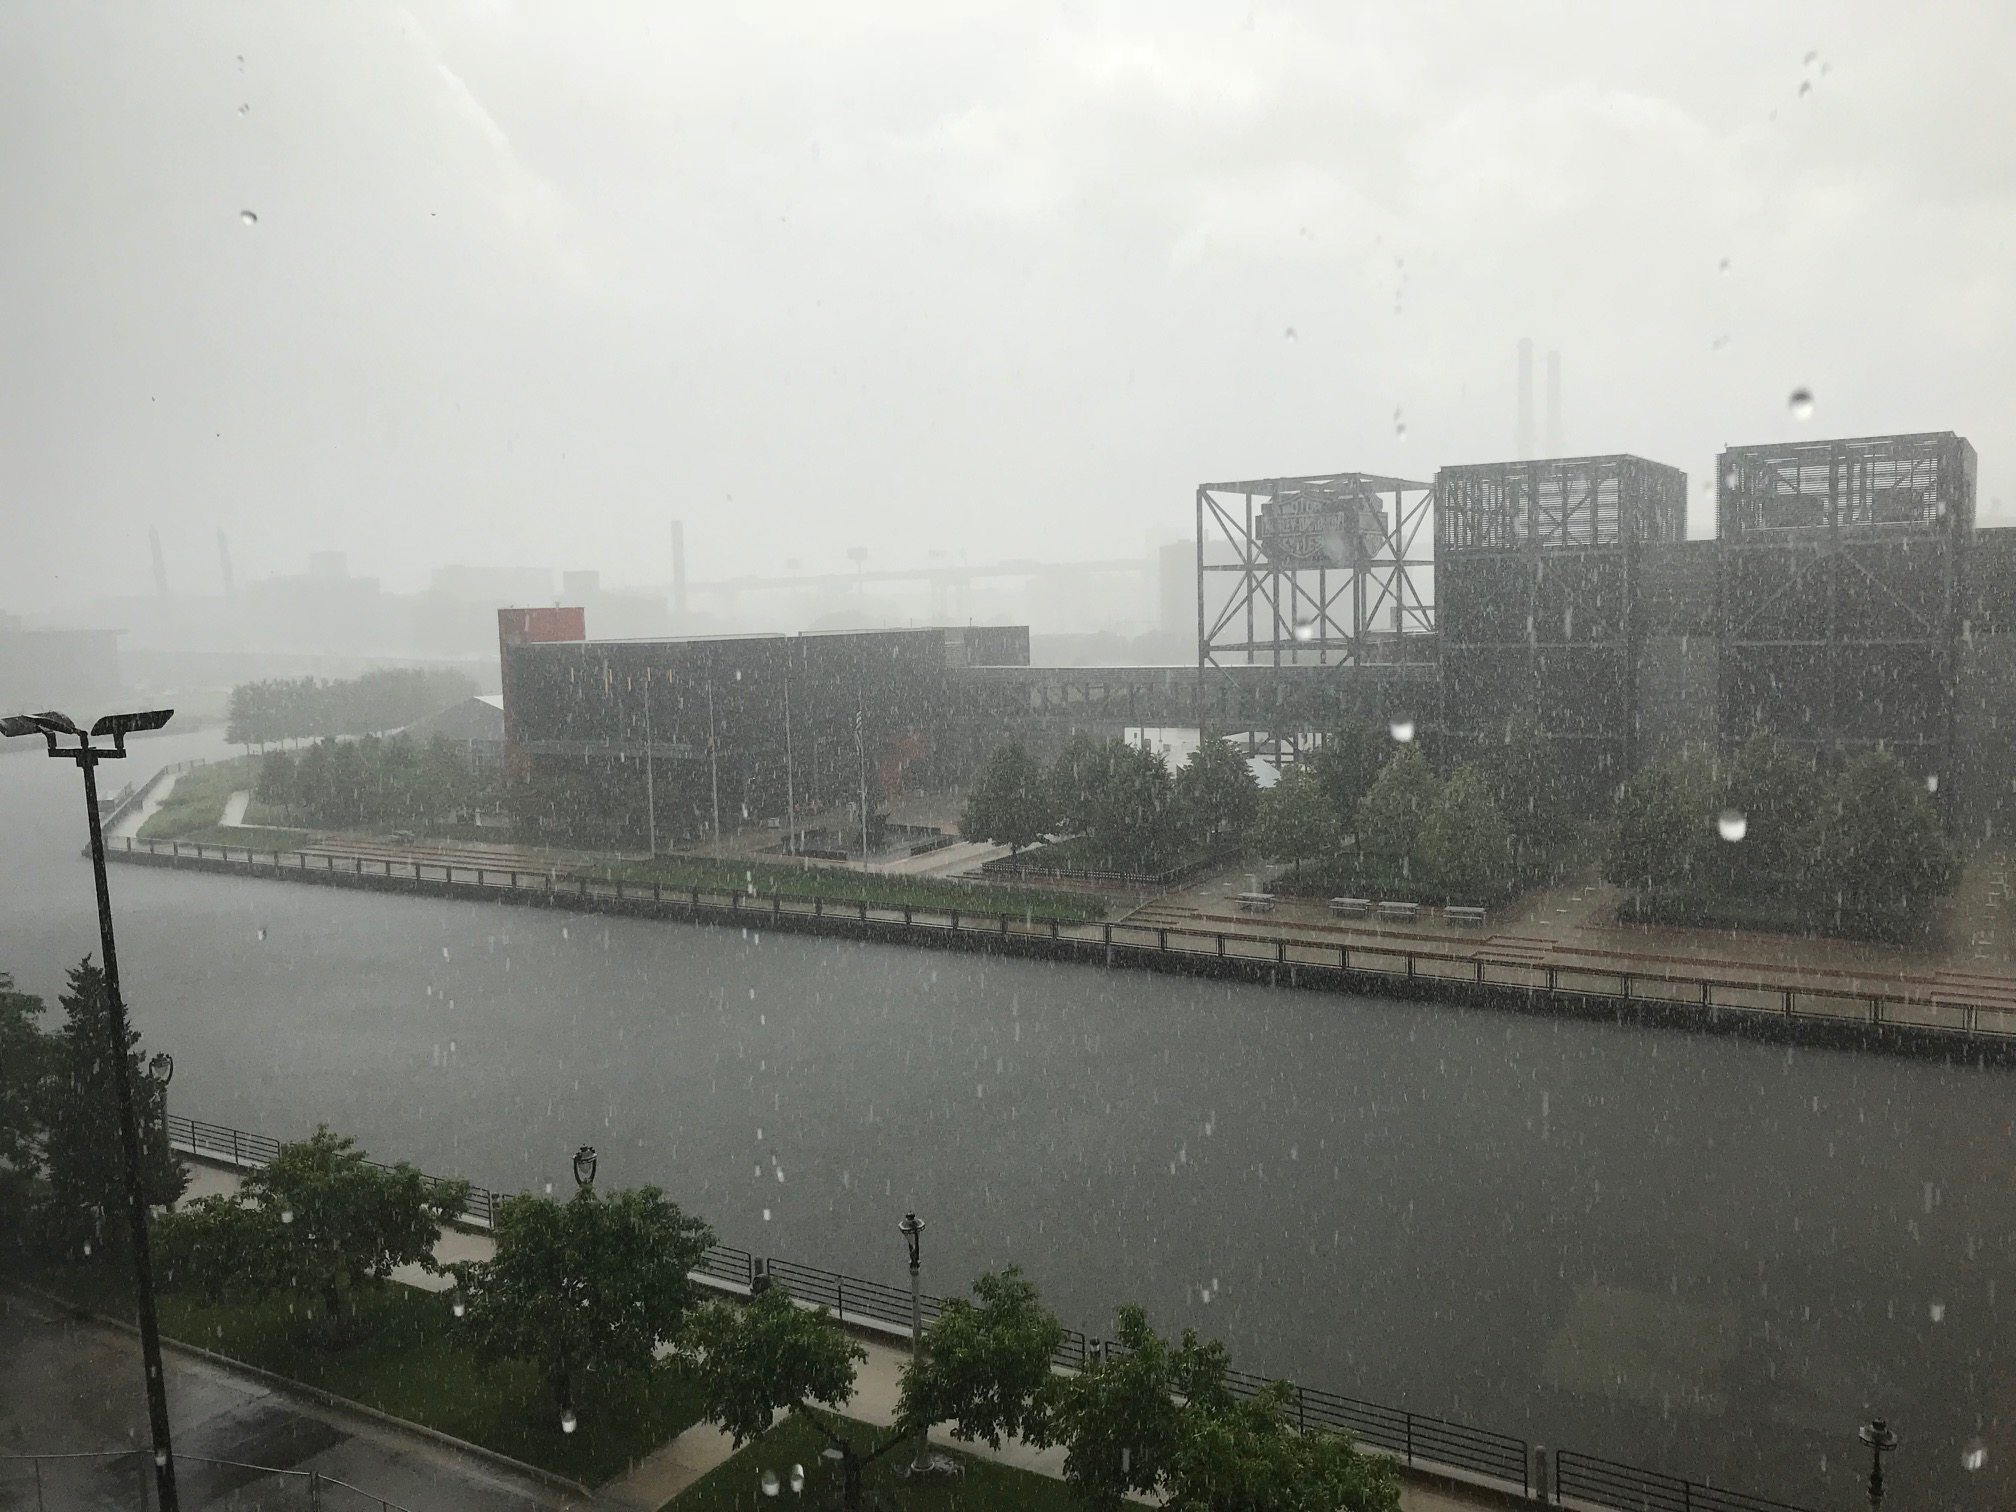 Looking out the windows at MMSD headquarters during a downpour that resulted in the first combined sewer overflow of 2018. Photo courtesy of MMSD.